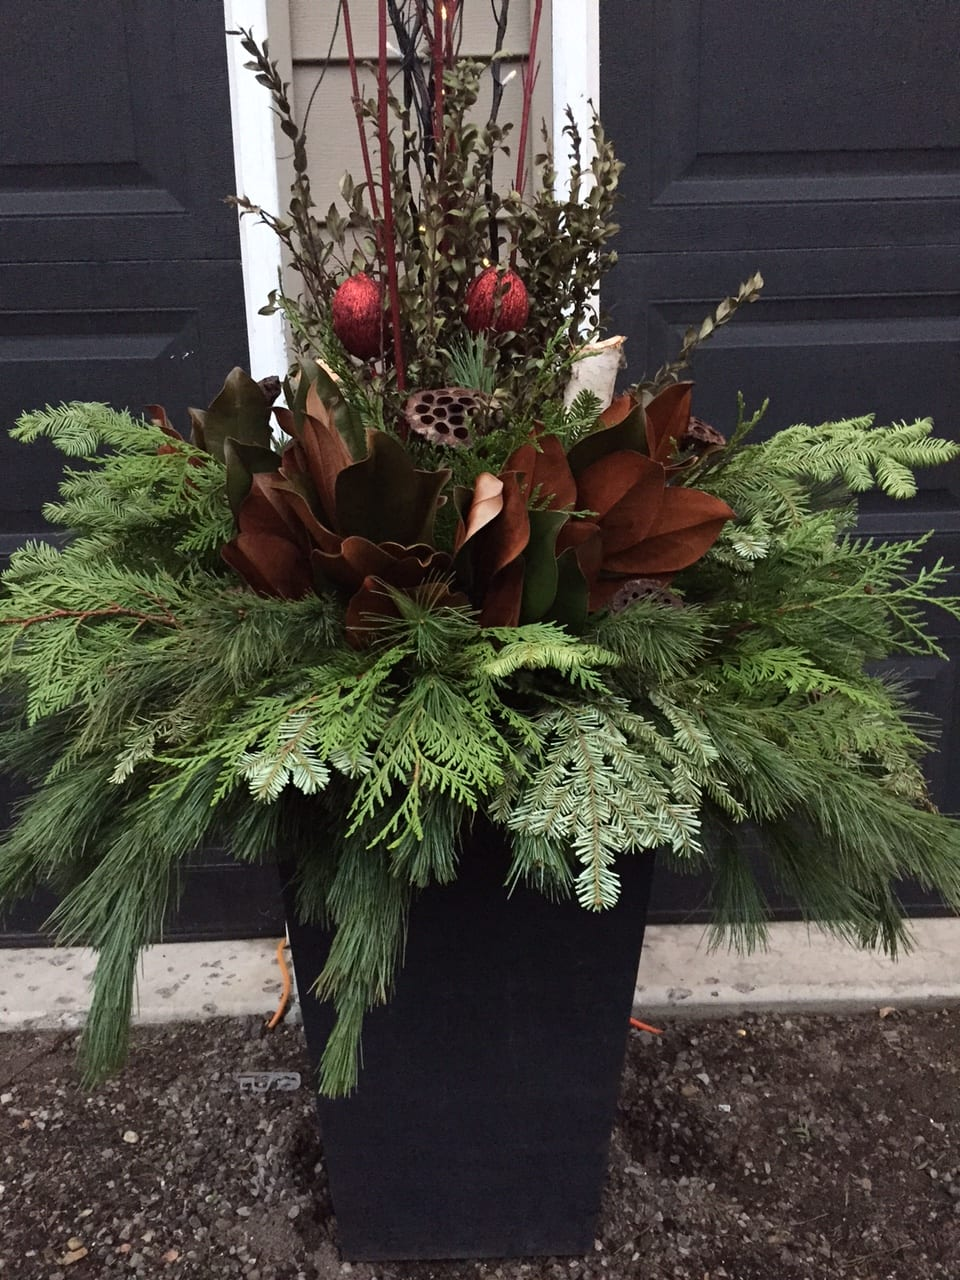 Seasonal planters, pots and urns